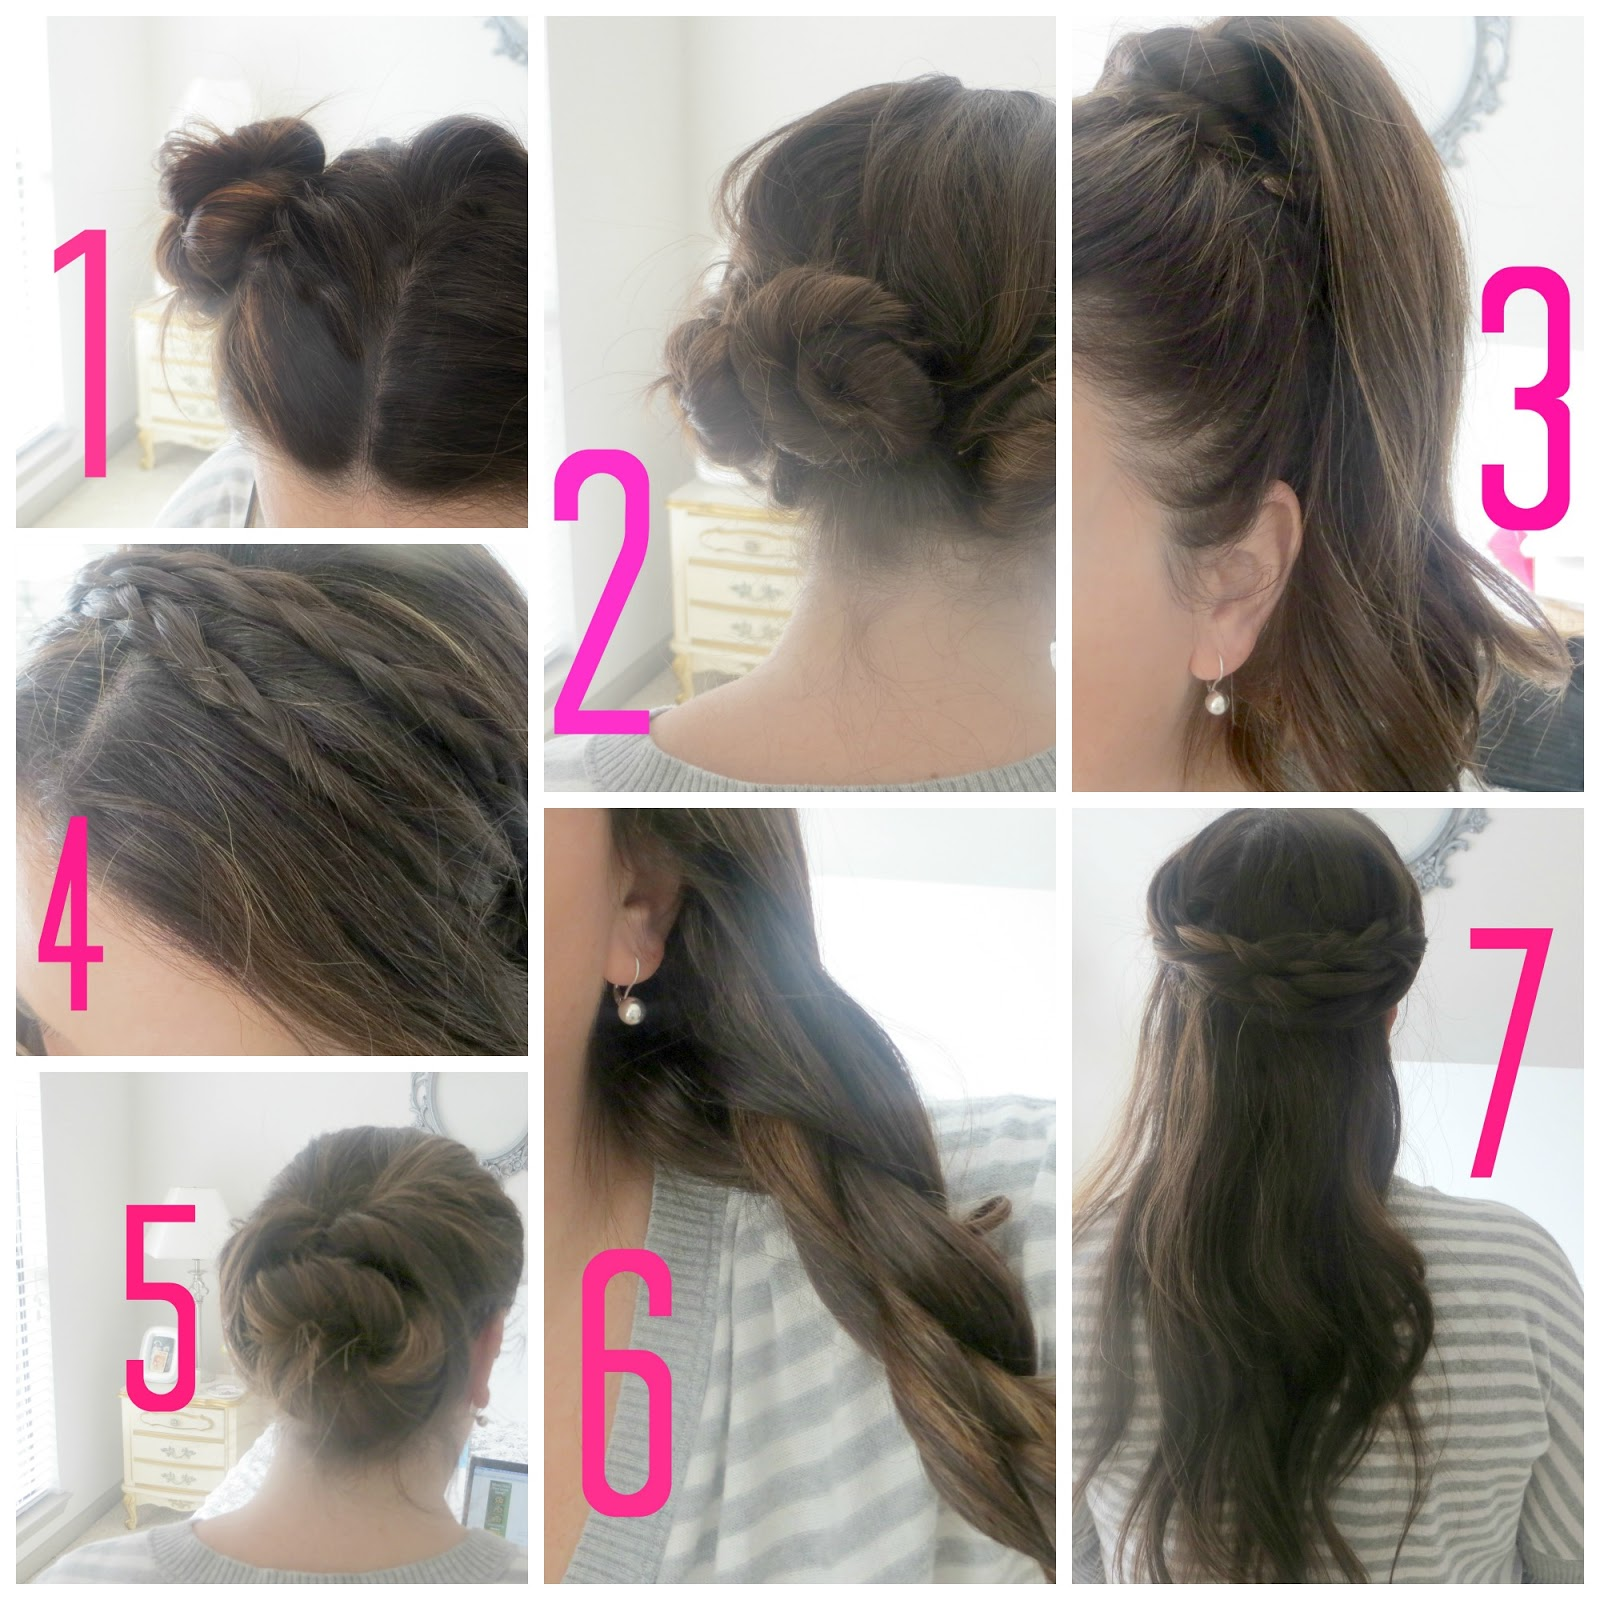 Superb Easy Hairstyles For Short Hair Step By Step Haircuts Short Hairstyles Gunalazisus